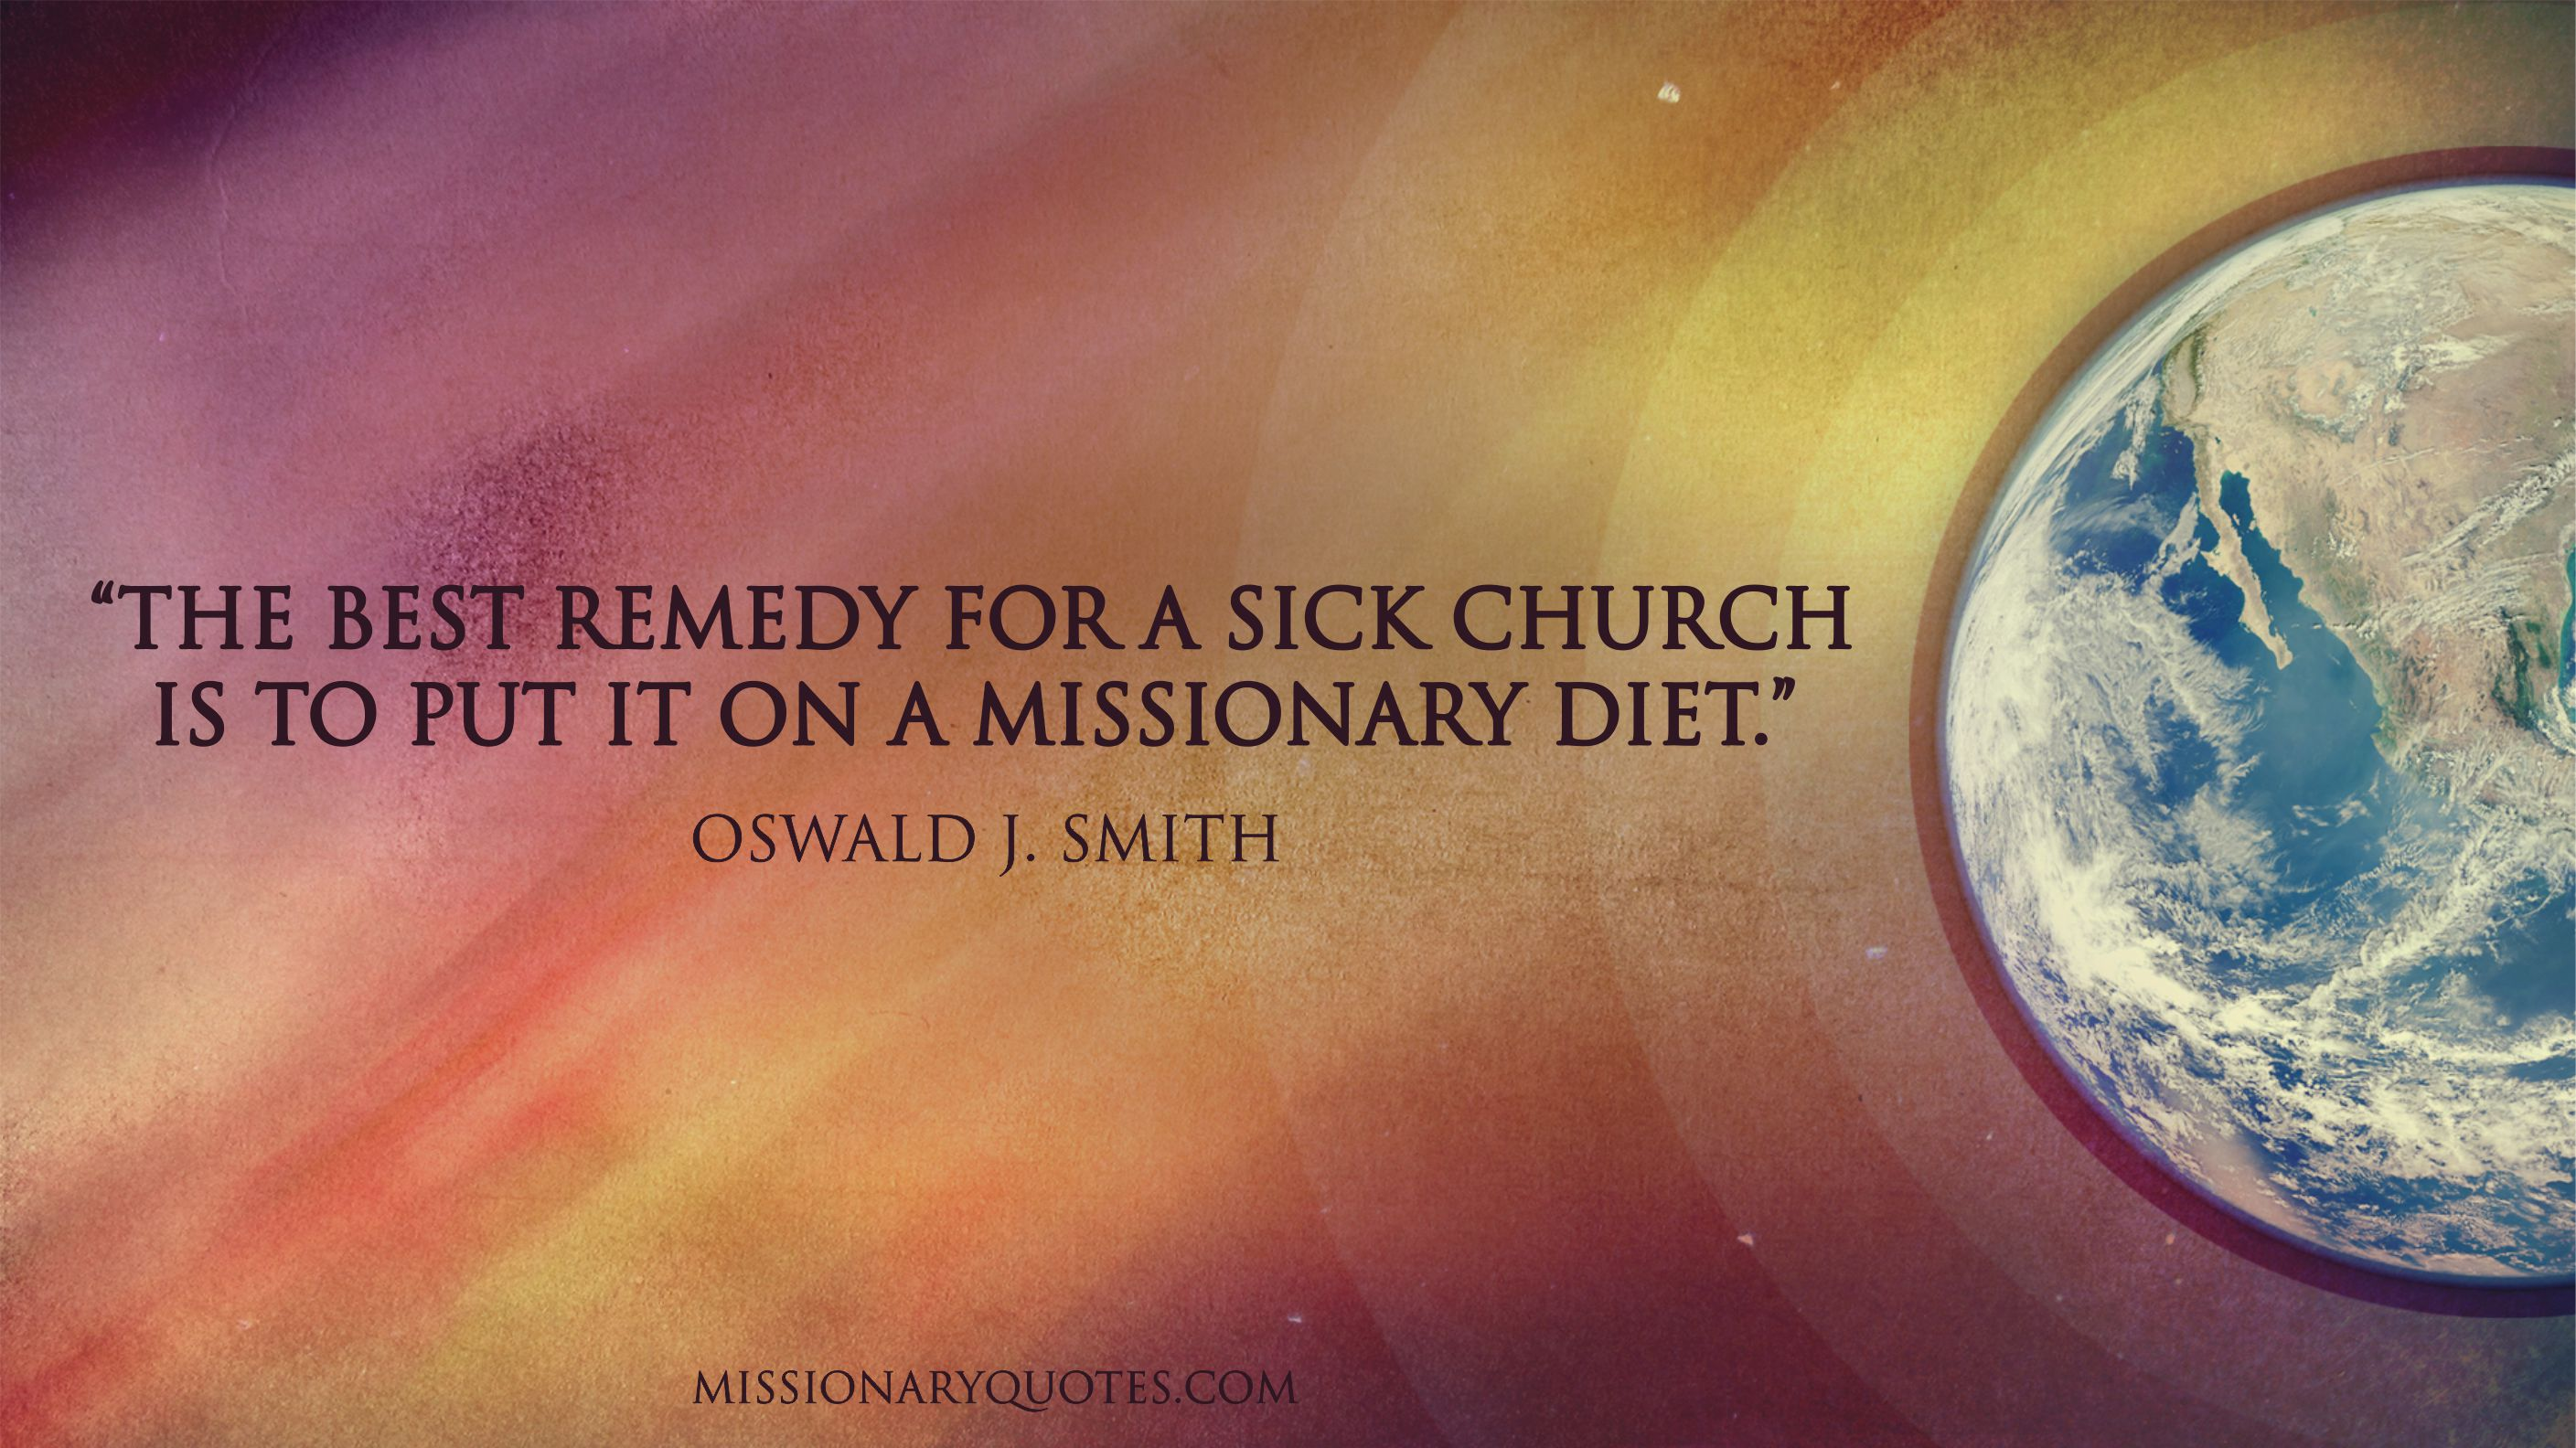 Oswald J Smith - The best remedy for a sick church